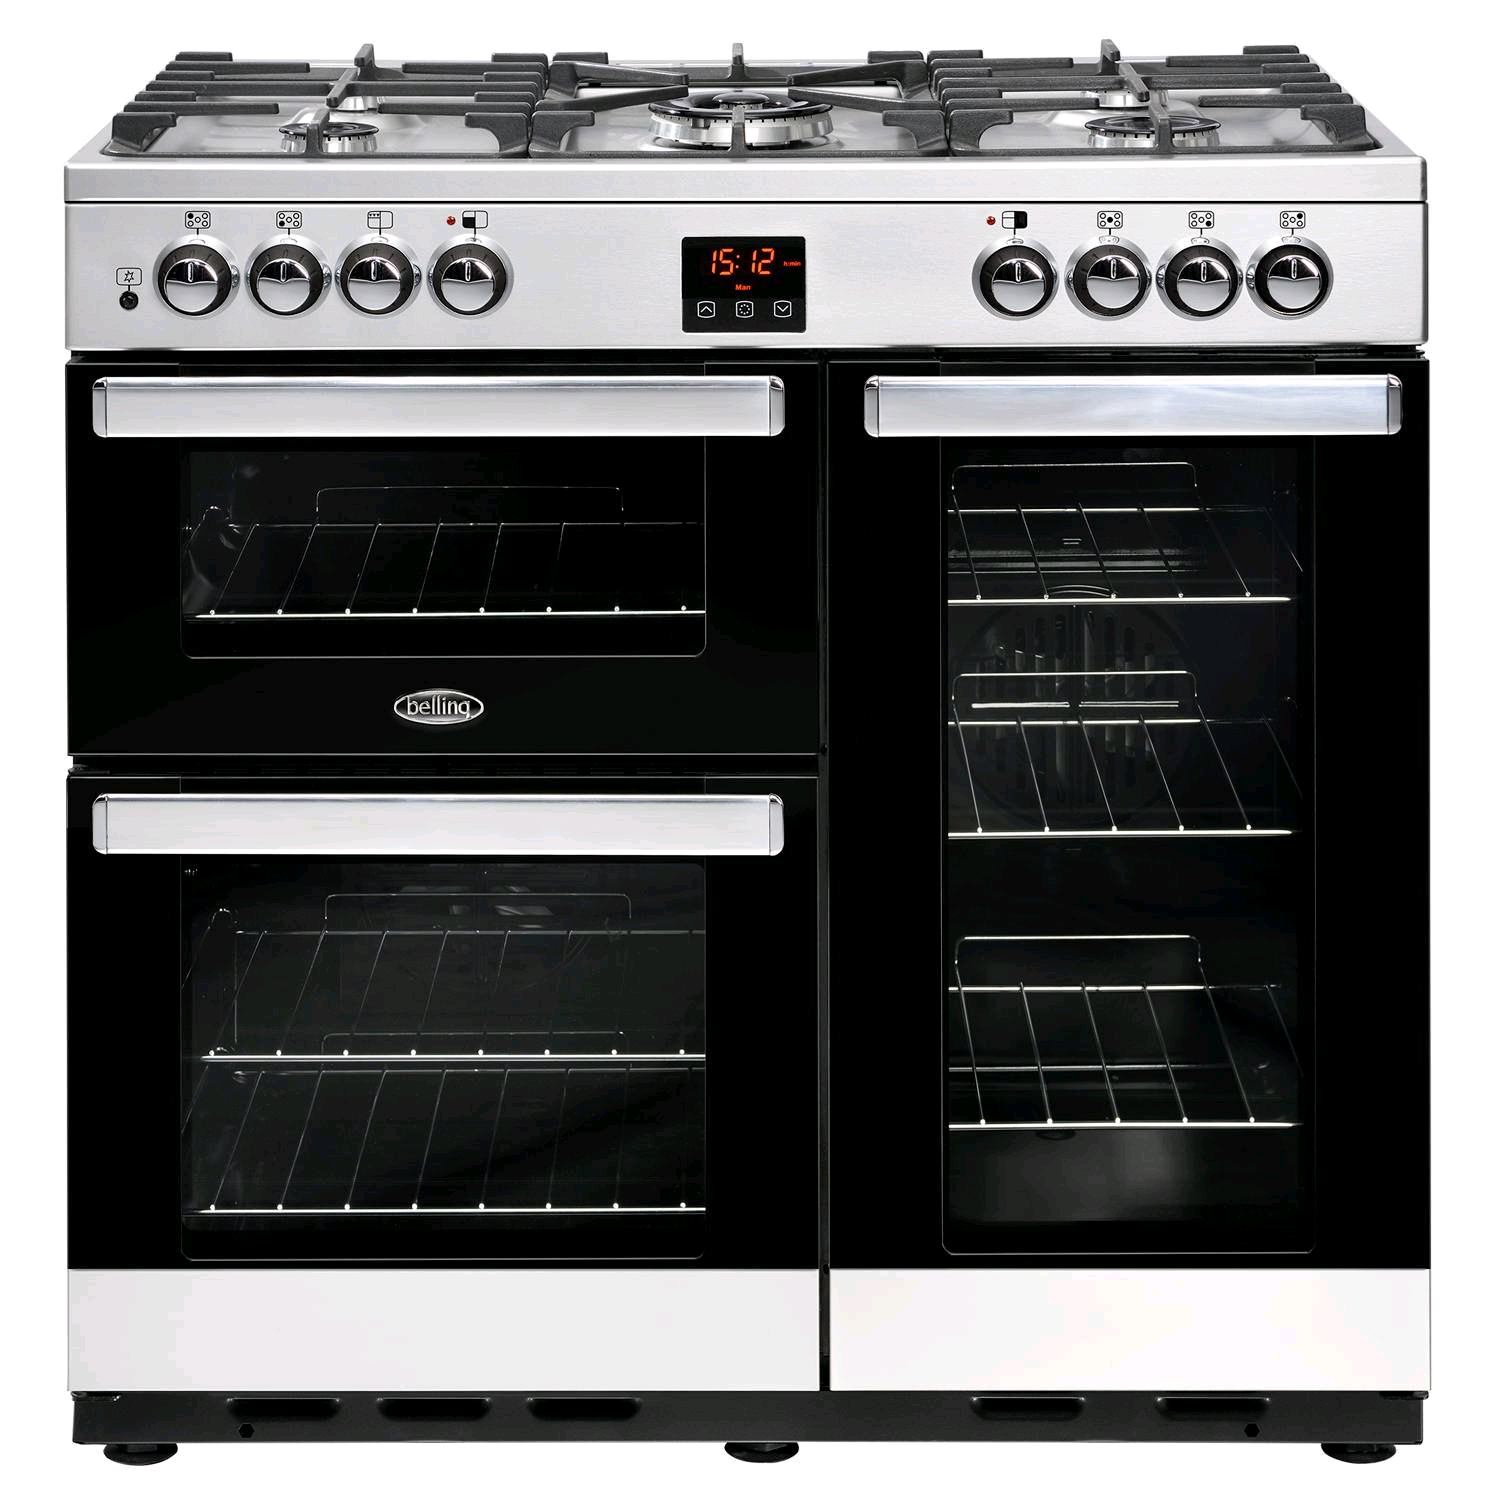 Belling Farmhouse Dual Fuel Cooker 90DFT Stainless Steel 4444444070